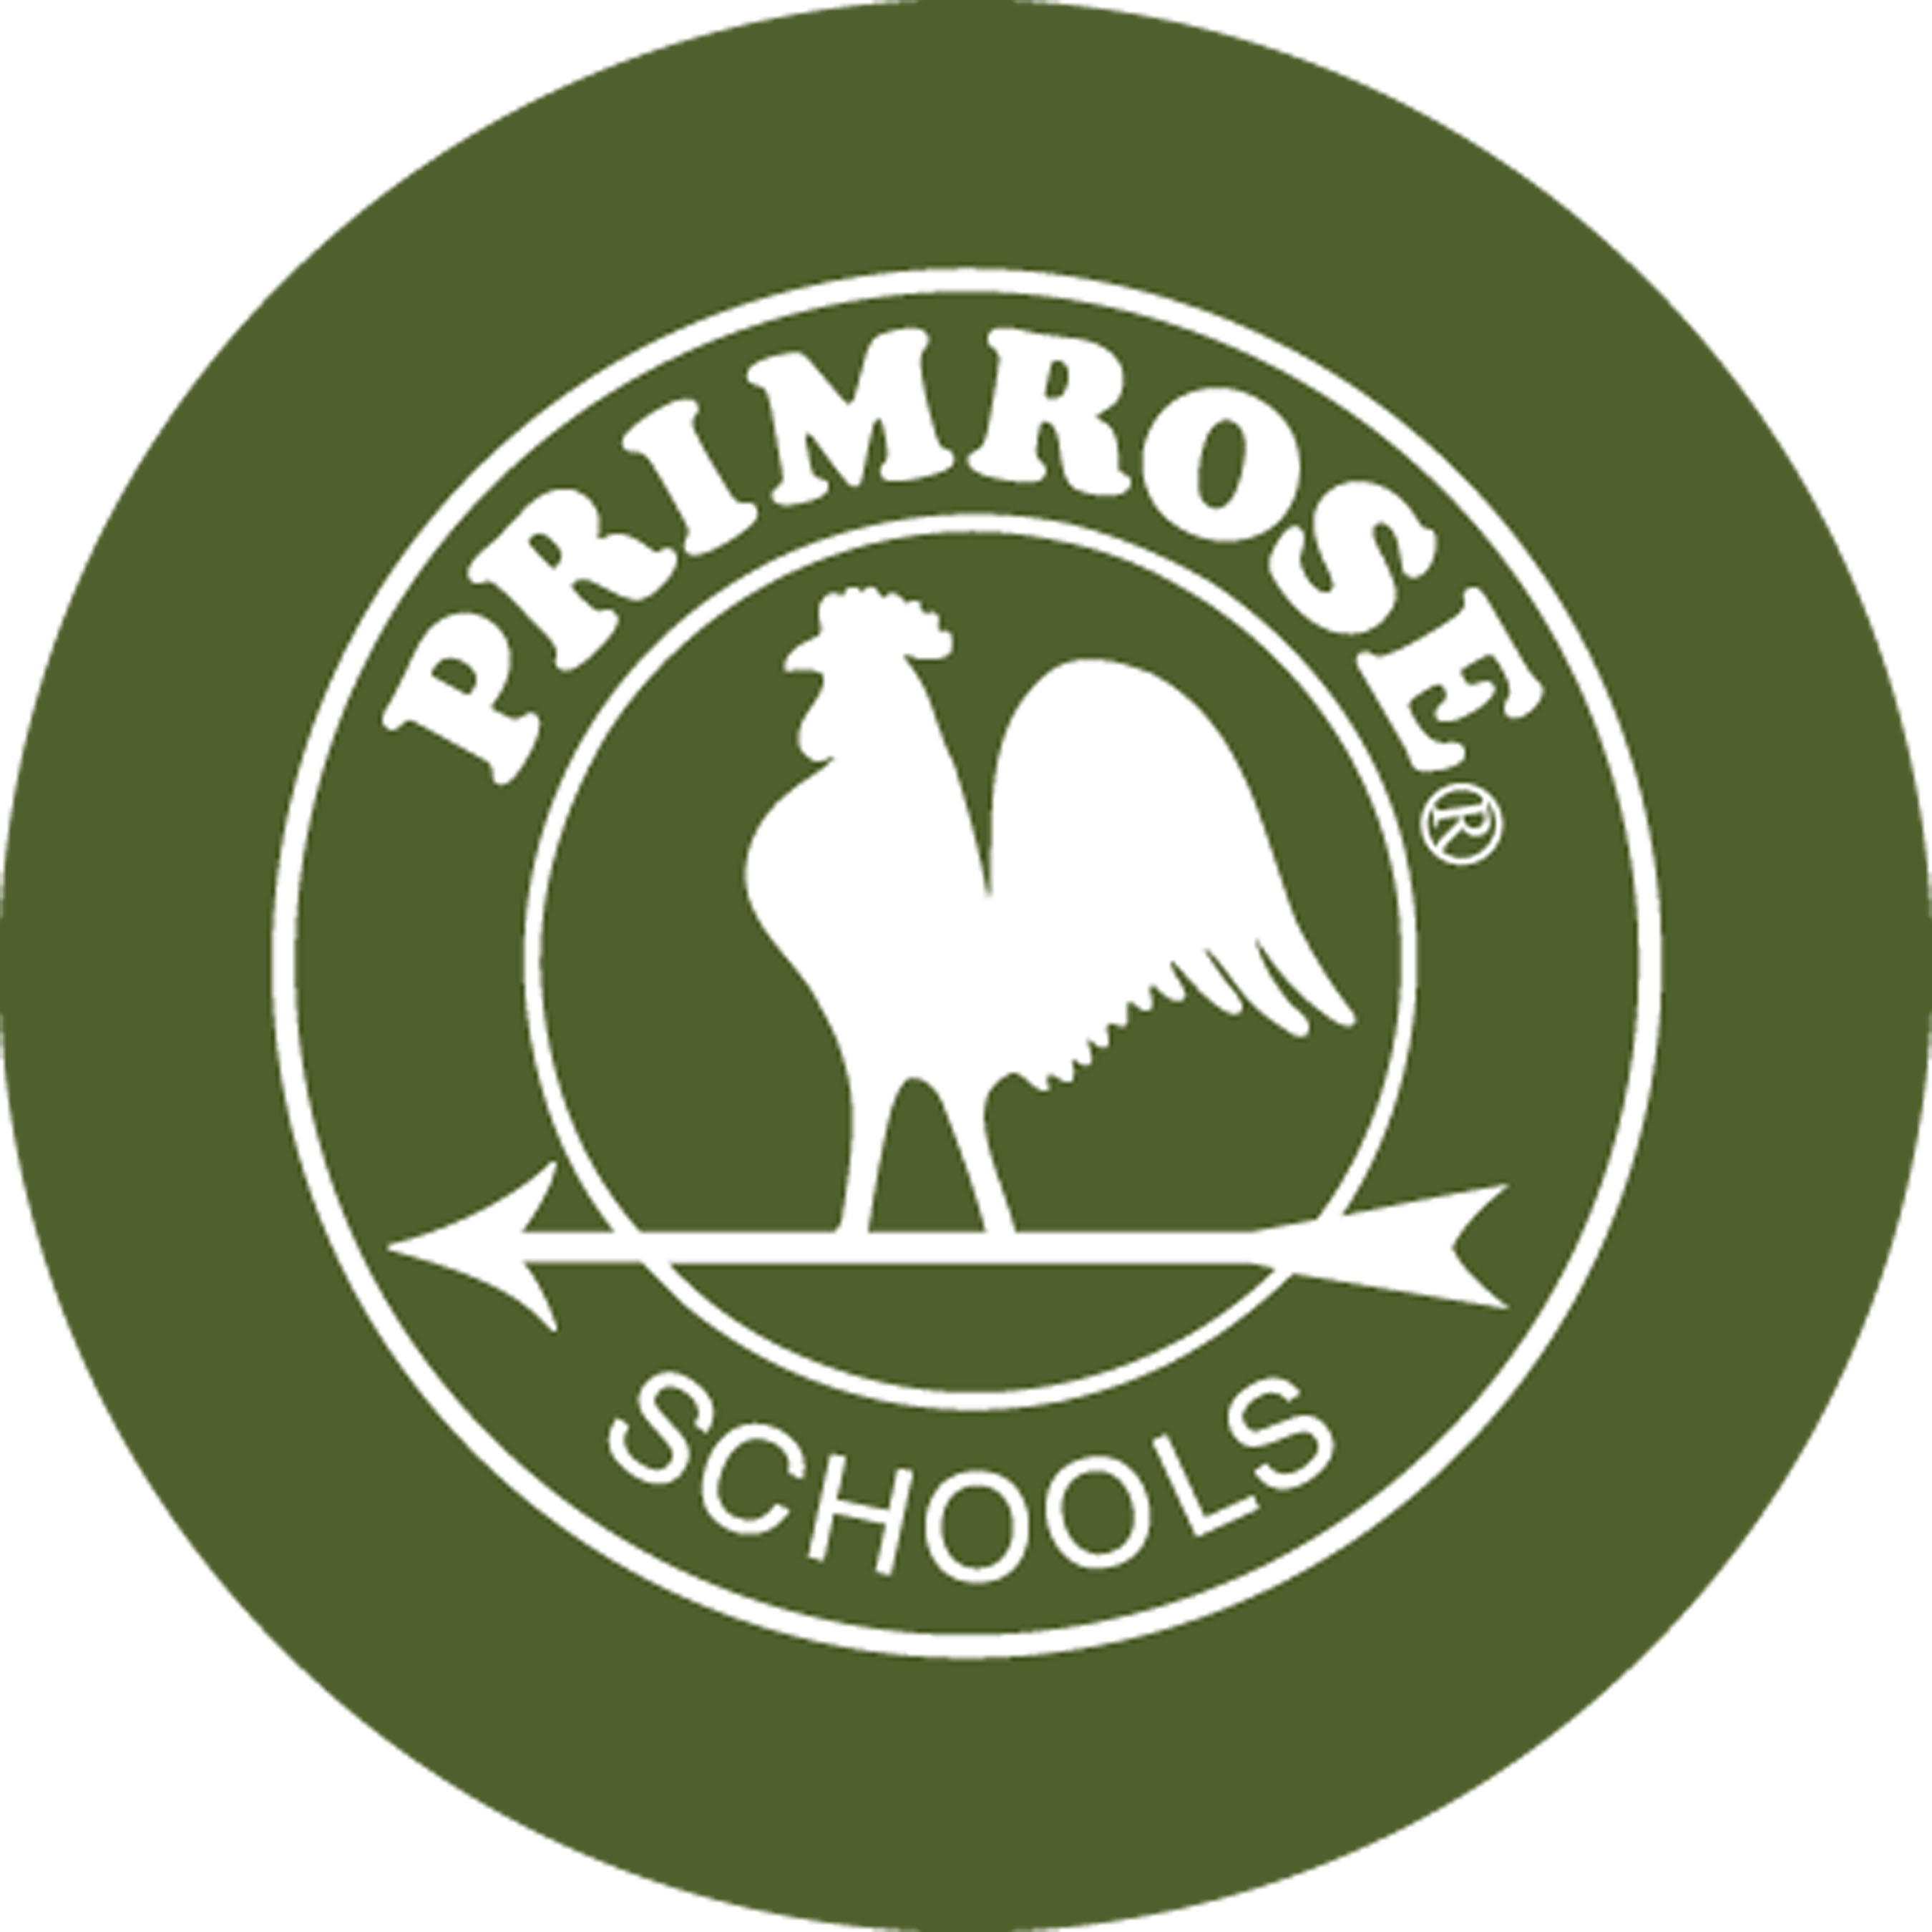 Primrose Schools is the nation's leader in providing a premier early education and care experience. (PRNewsFoto/Primrose Schools)